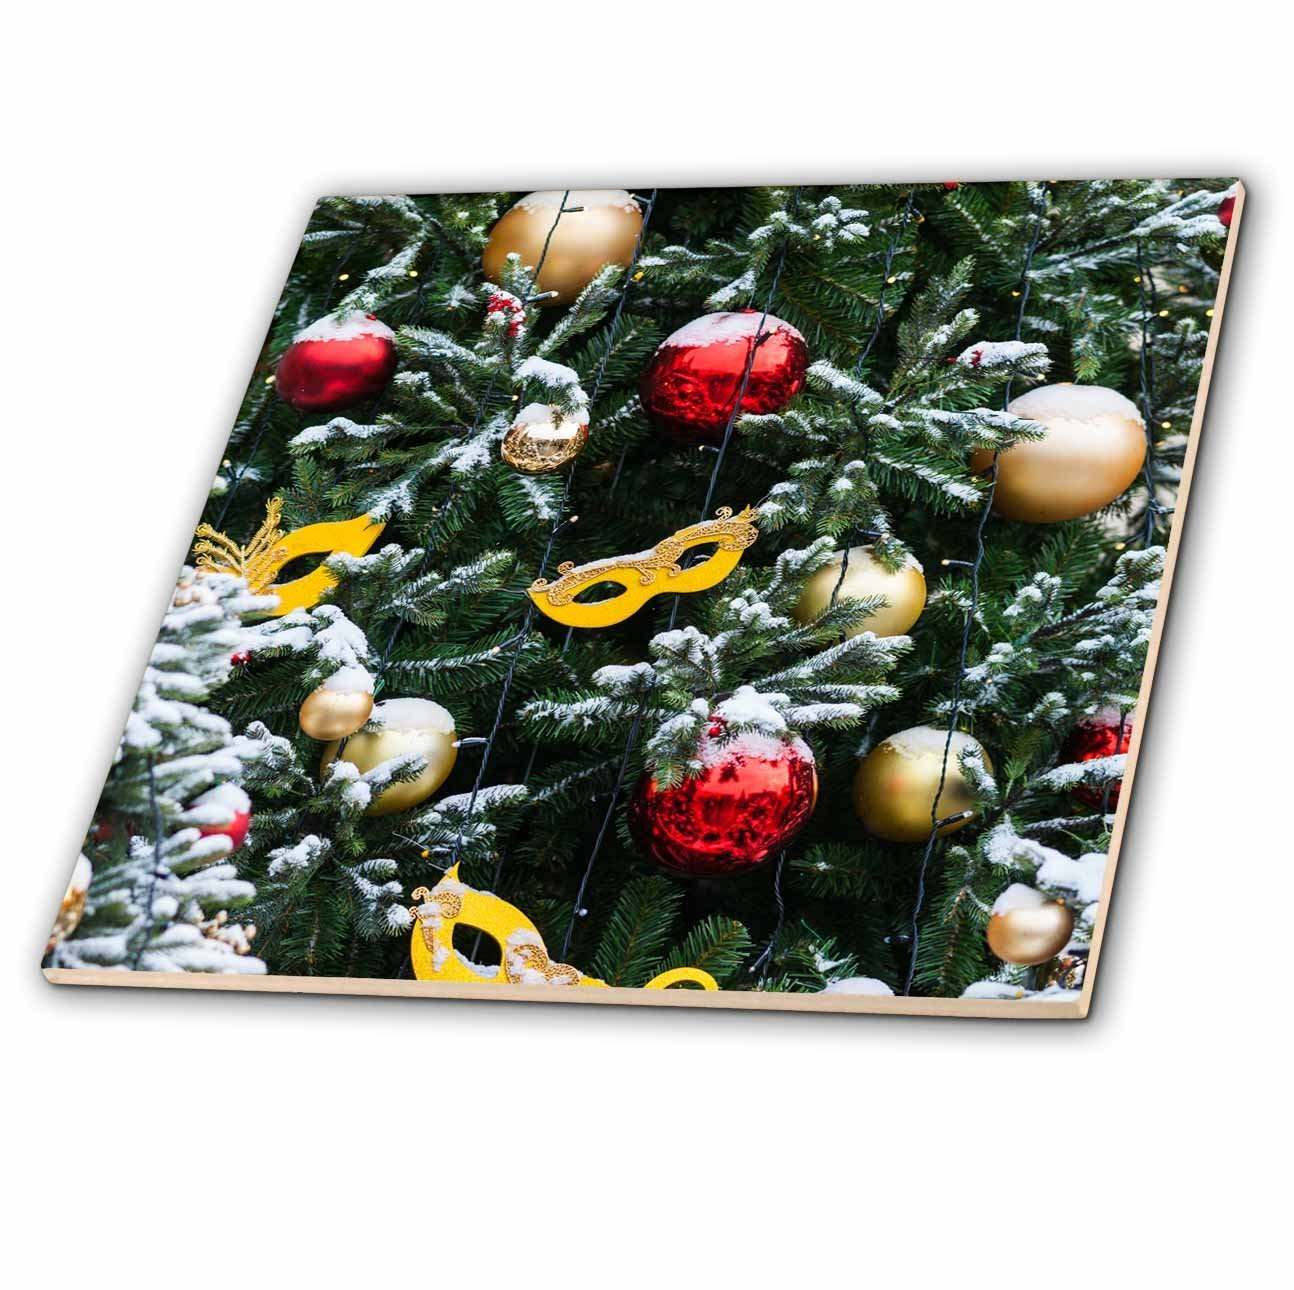 3dRose Alexis Photography - Holidays Christmas - Snow covered green decorated Christmas trees, masks, balls, lights - 8 Inch Glass Tile (ct_275963_7)